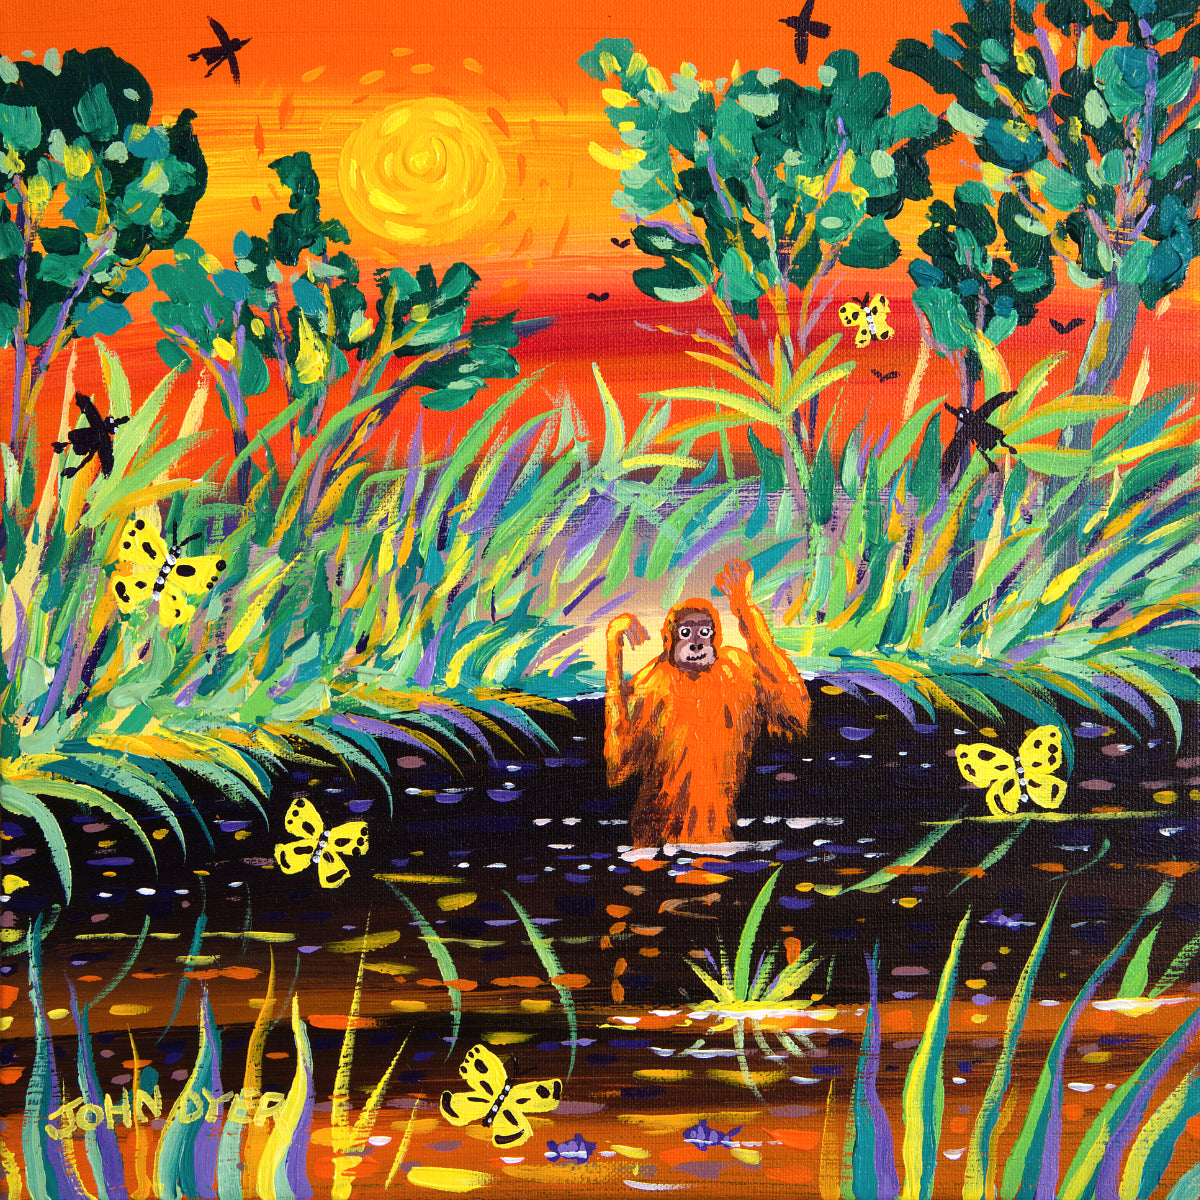 John Dyer Painting. Orangutan Sunset, Borneo. Orangutan wades across a river in the rainforest of Borneo.